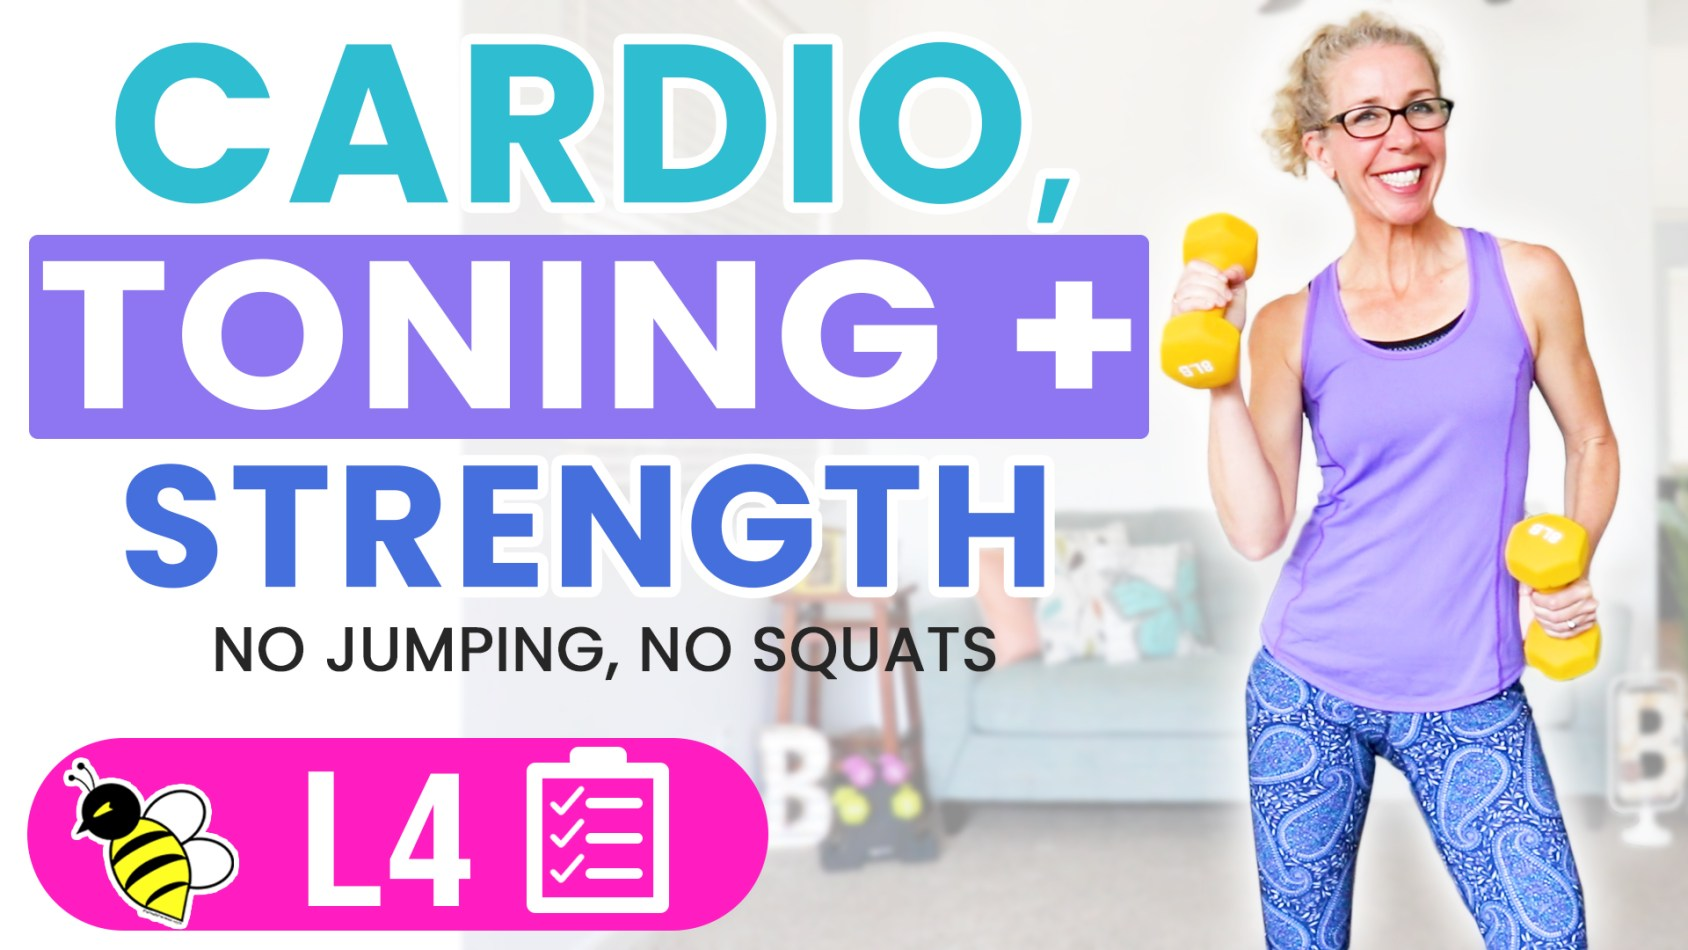 35 Minute Low Impact Cardio, Toning + Strength Workout